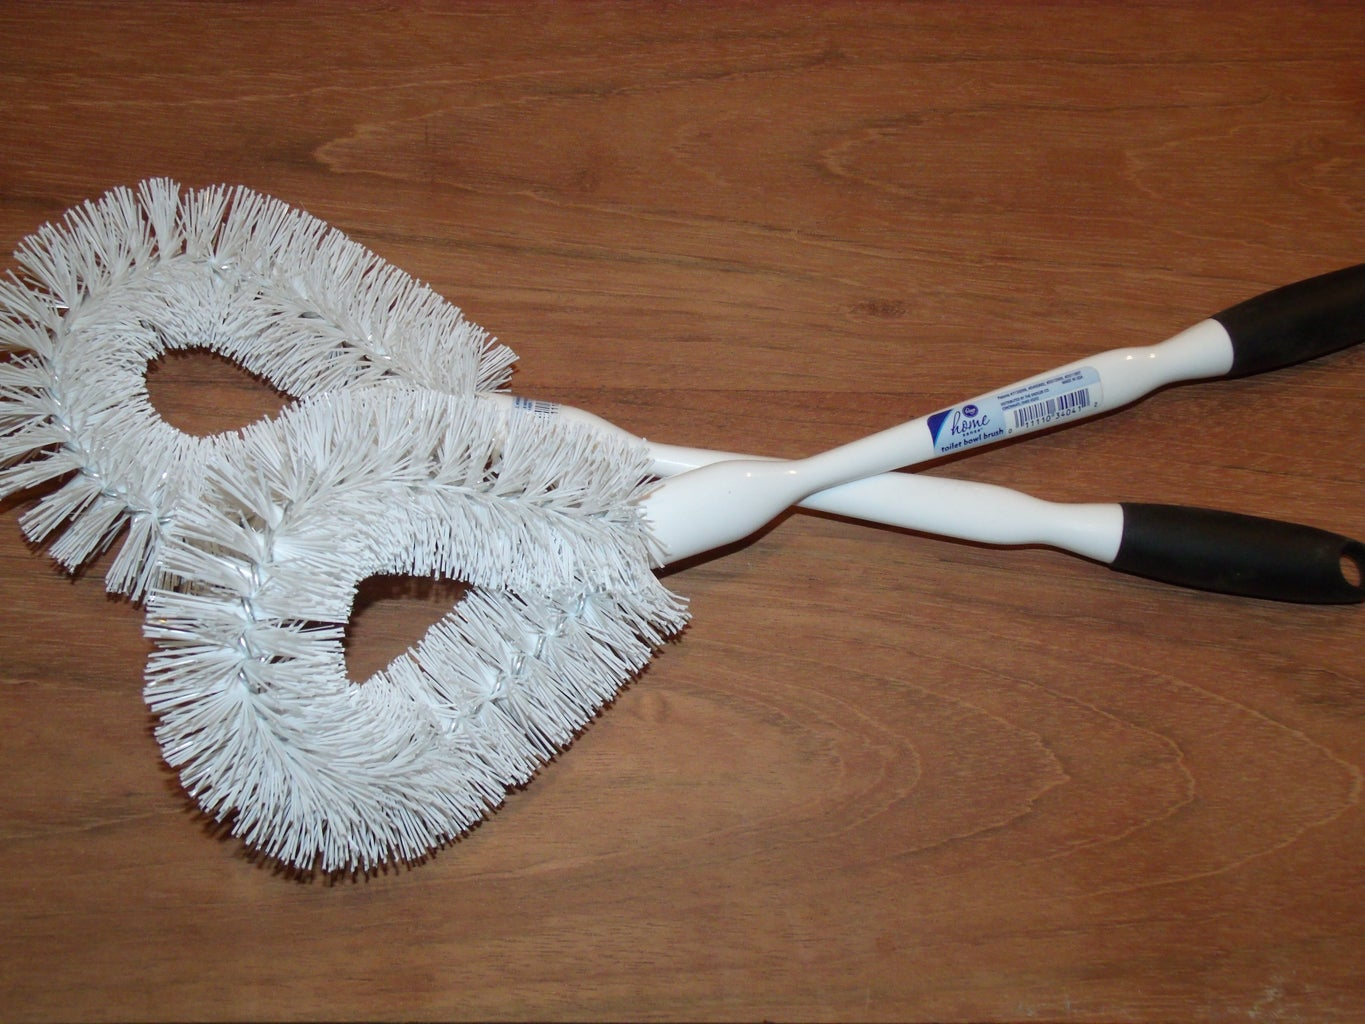 Disassemble the Toilet Brushes